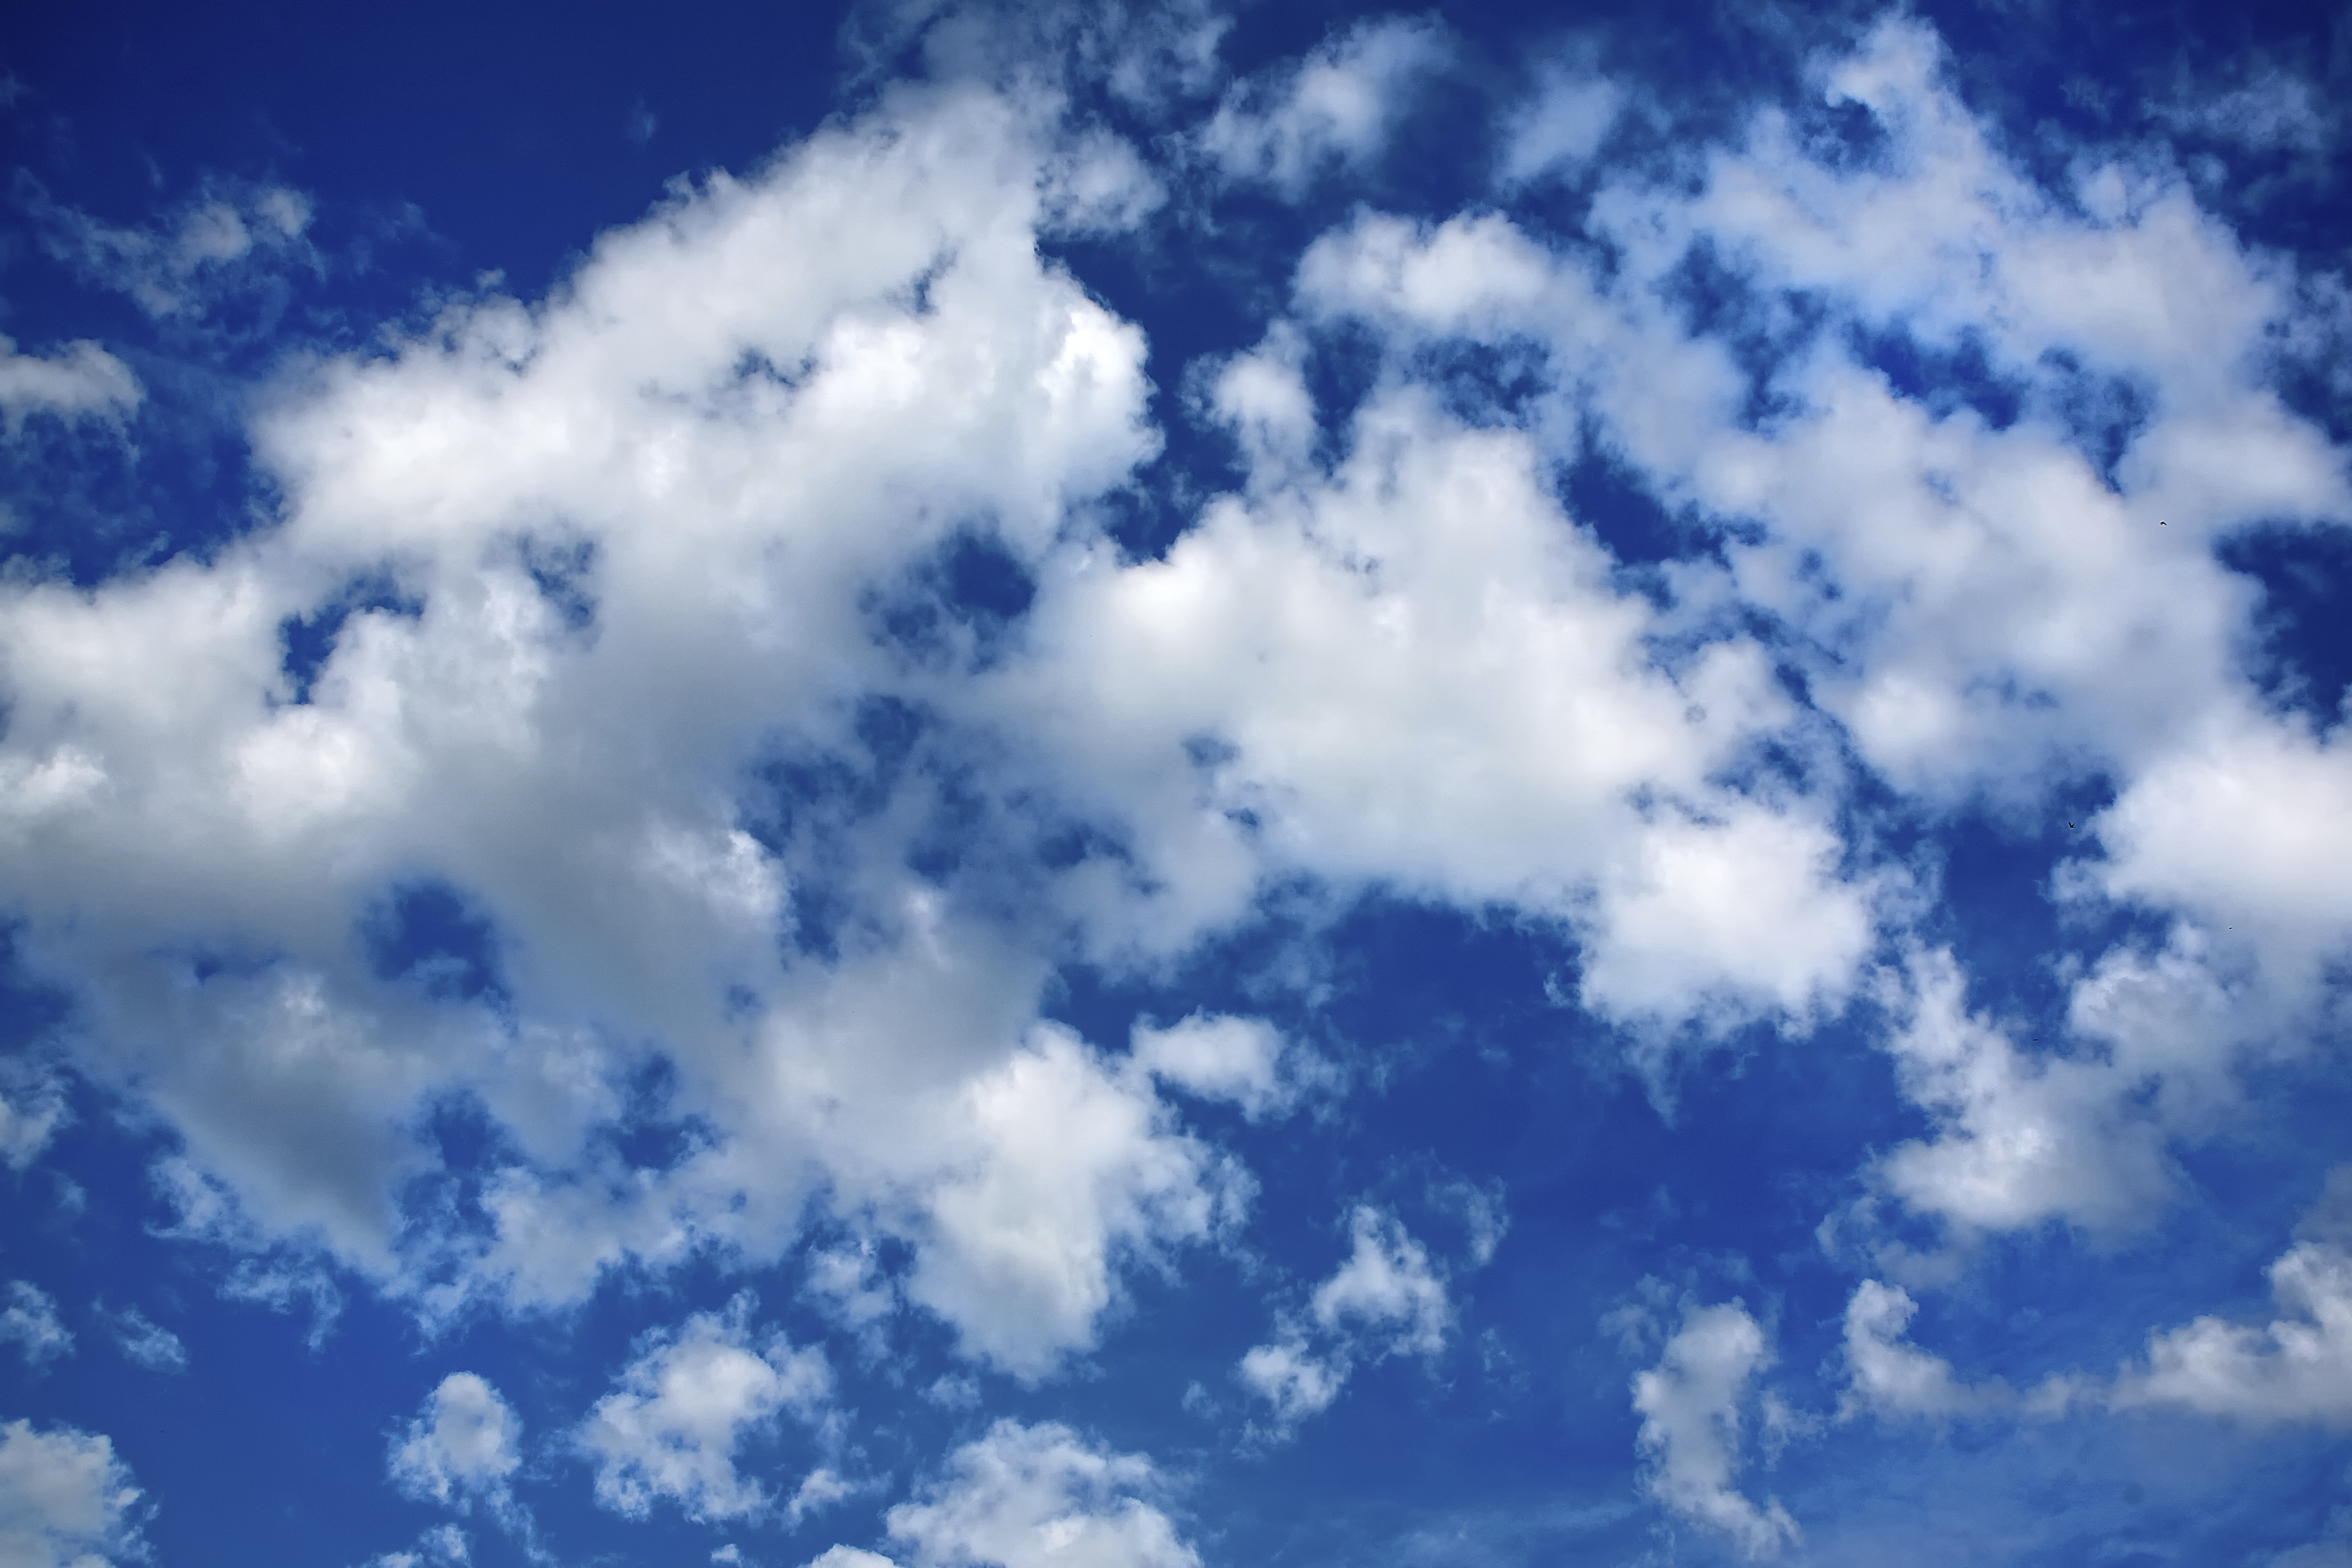 SaaS Valuations Deserve Their Place In The Clouds